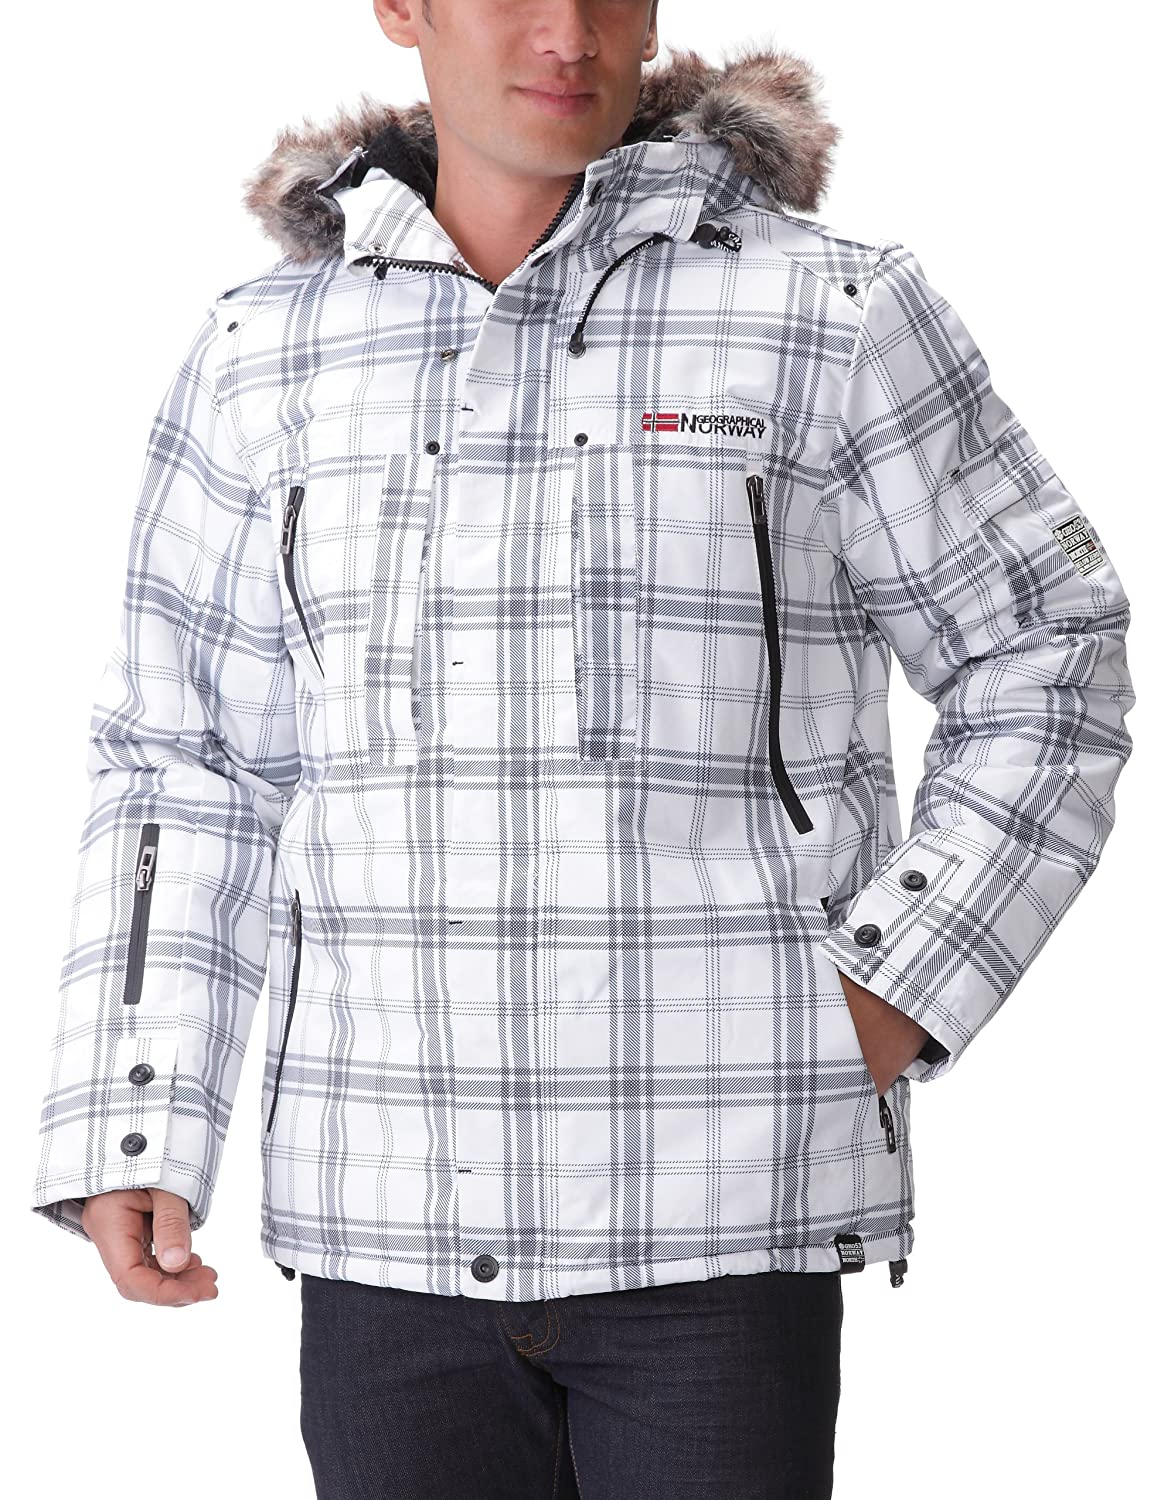 Geographical Norway Men's Cluses Check Assor a Long sleeve Jacket